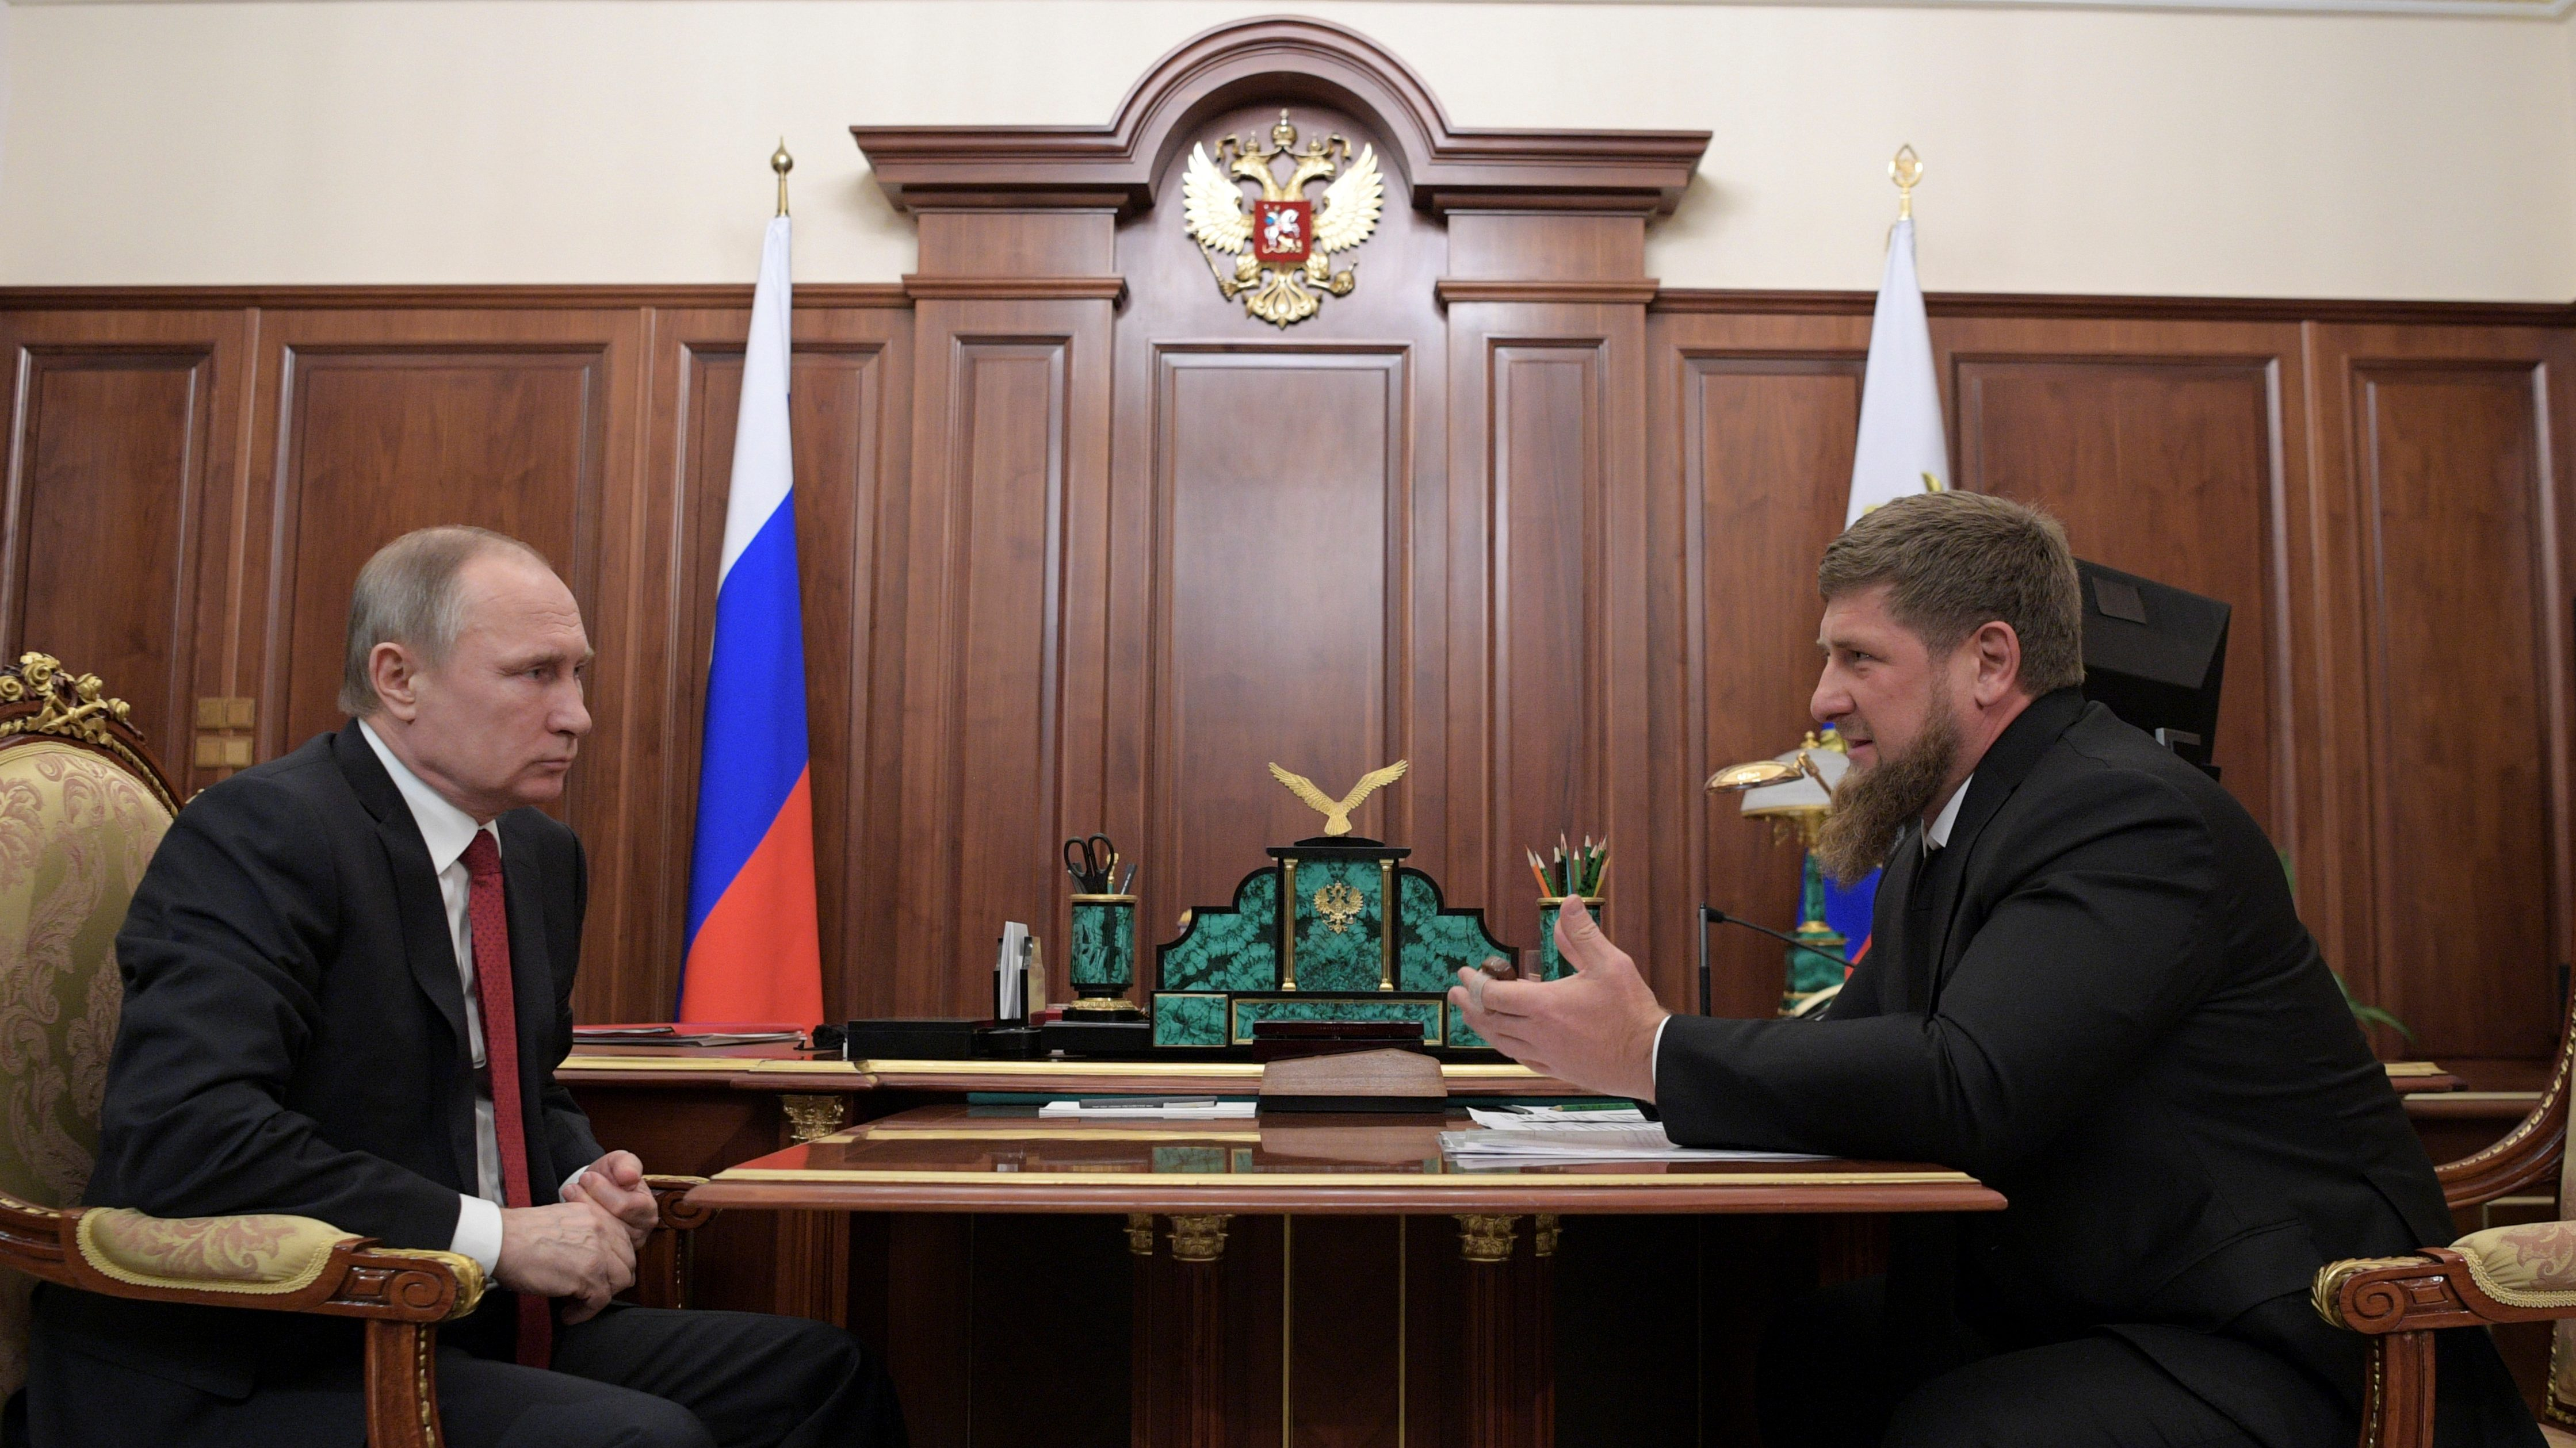 Russian President Vladimir Putin meets with Ramzan Kadyrov, head of the southern Russian region of Chechnya, at the Kremlin in Moscow, Russia April 19, 2017. Picture taken April 19, 2017. Sputnik/Aleksey Druzhinin/Kremlin via REUTERS ATTENTION EDITORS - THIS IMAGE WAS PROVIDED BY A THIRD PARTY. EDITORIAL USE ONLY. - RC1589BF43C0